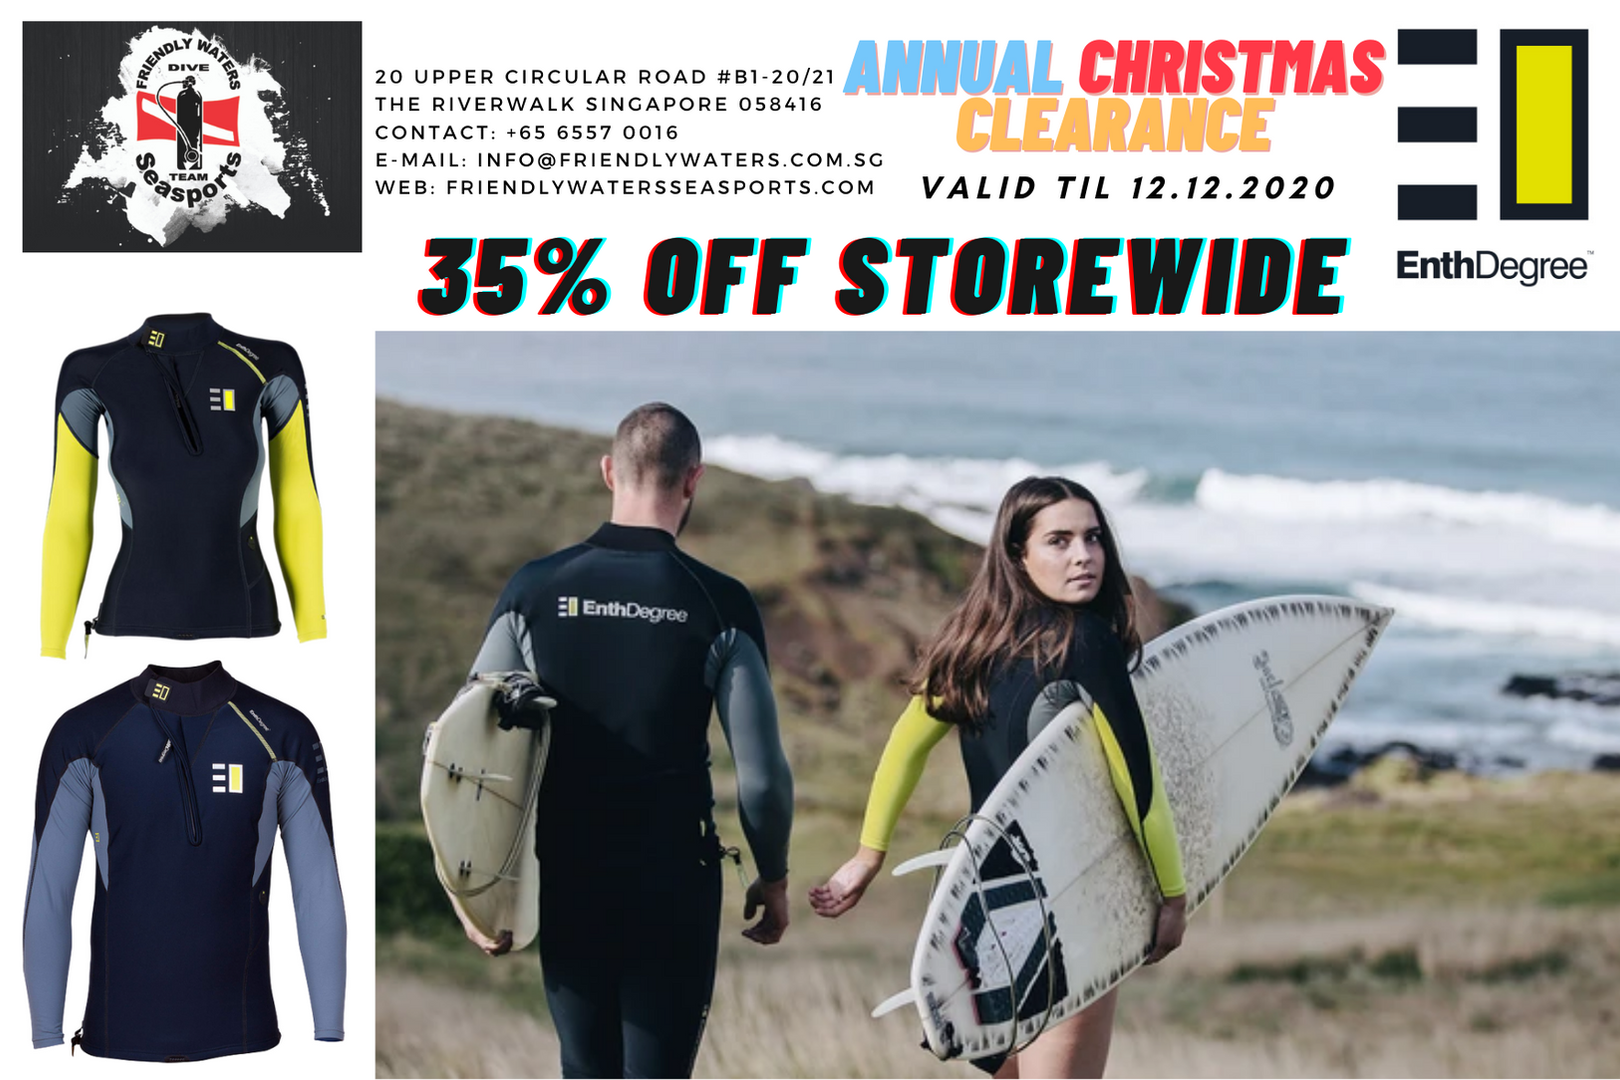 Annual Christmas Clearance - Enth Degree Technical Performance Wear